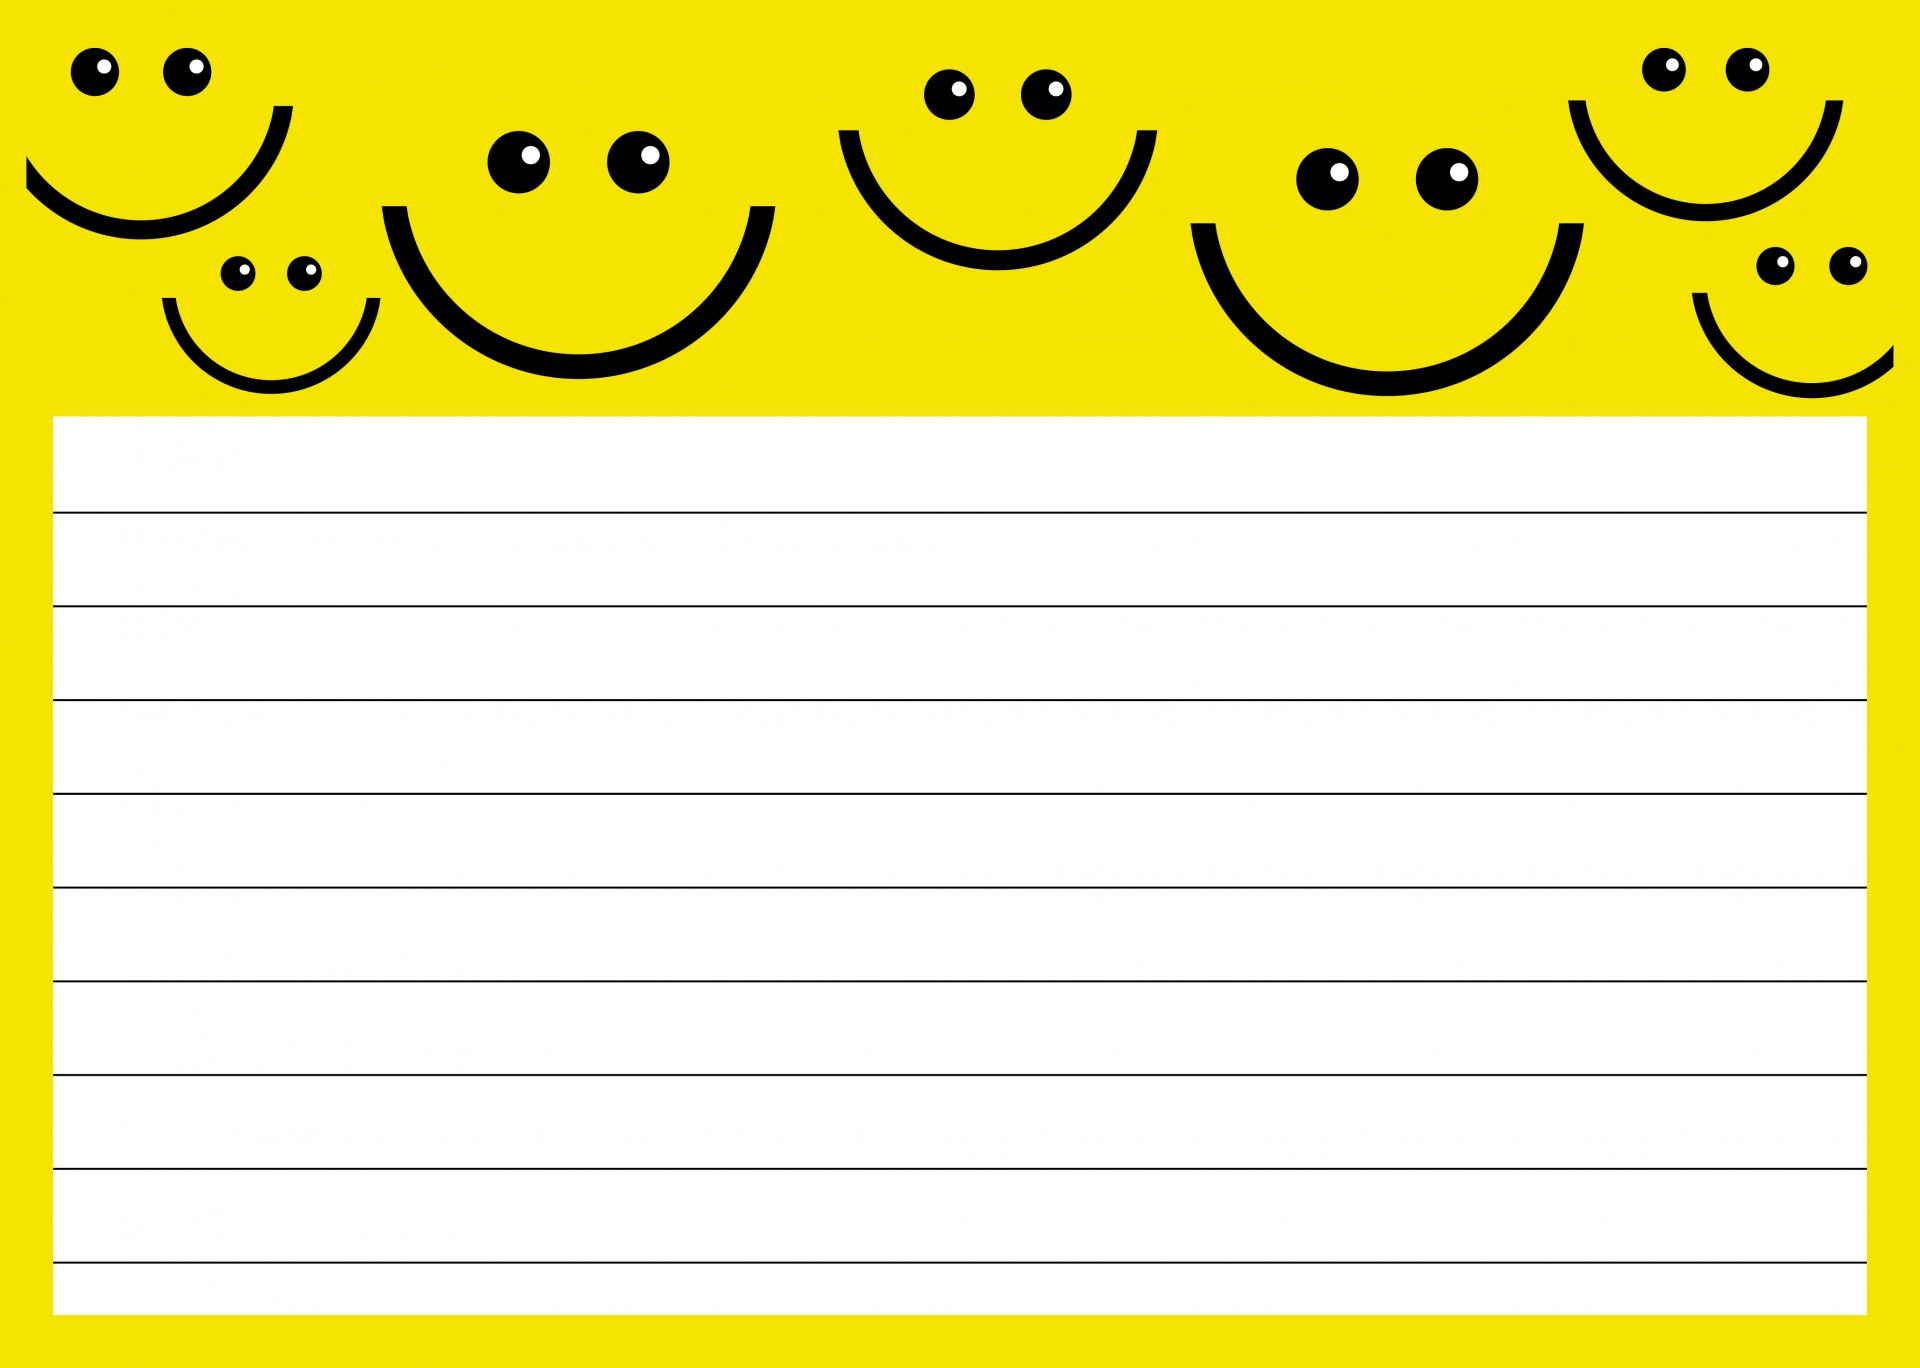 Paper clipart lined paper Clipart Yellow ClipartMe Paper Lined